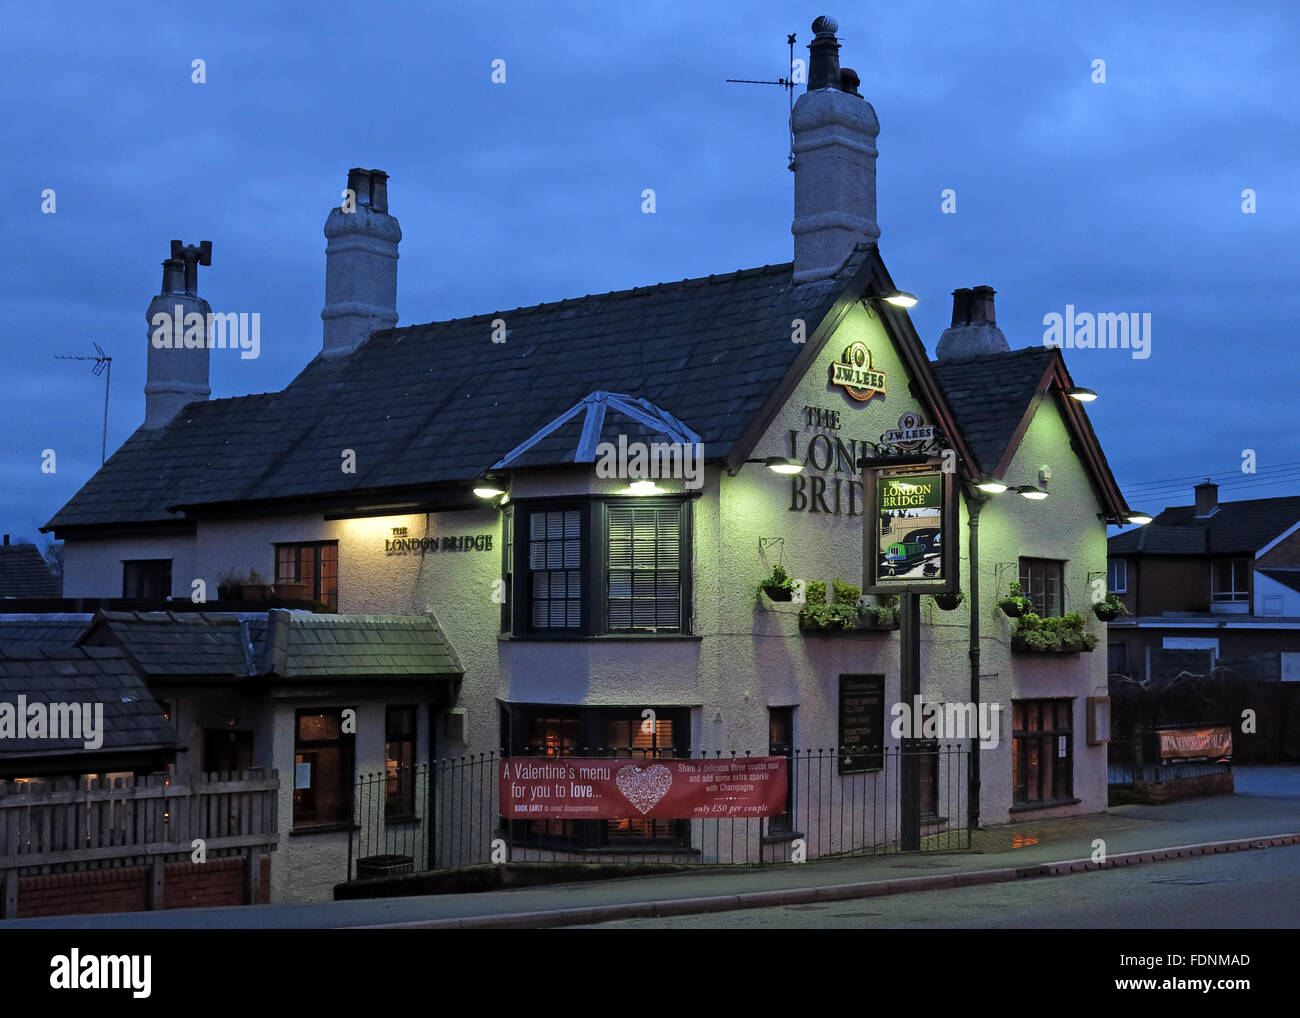 The London Bridge Pub,Stockton Heath,Warrington, At Night,Cheshire,England,UK - Stock Image